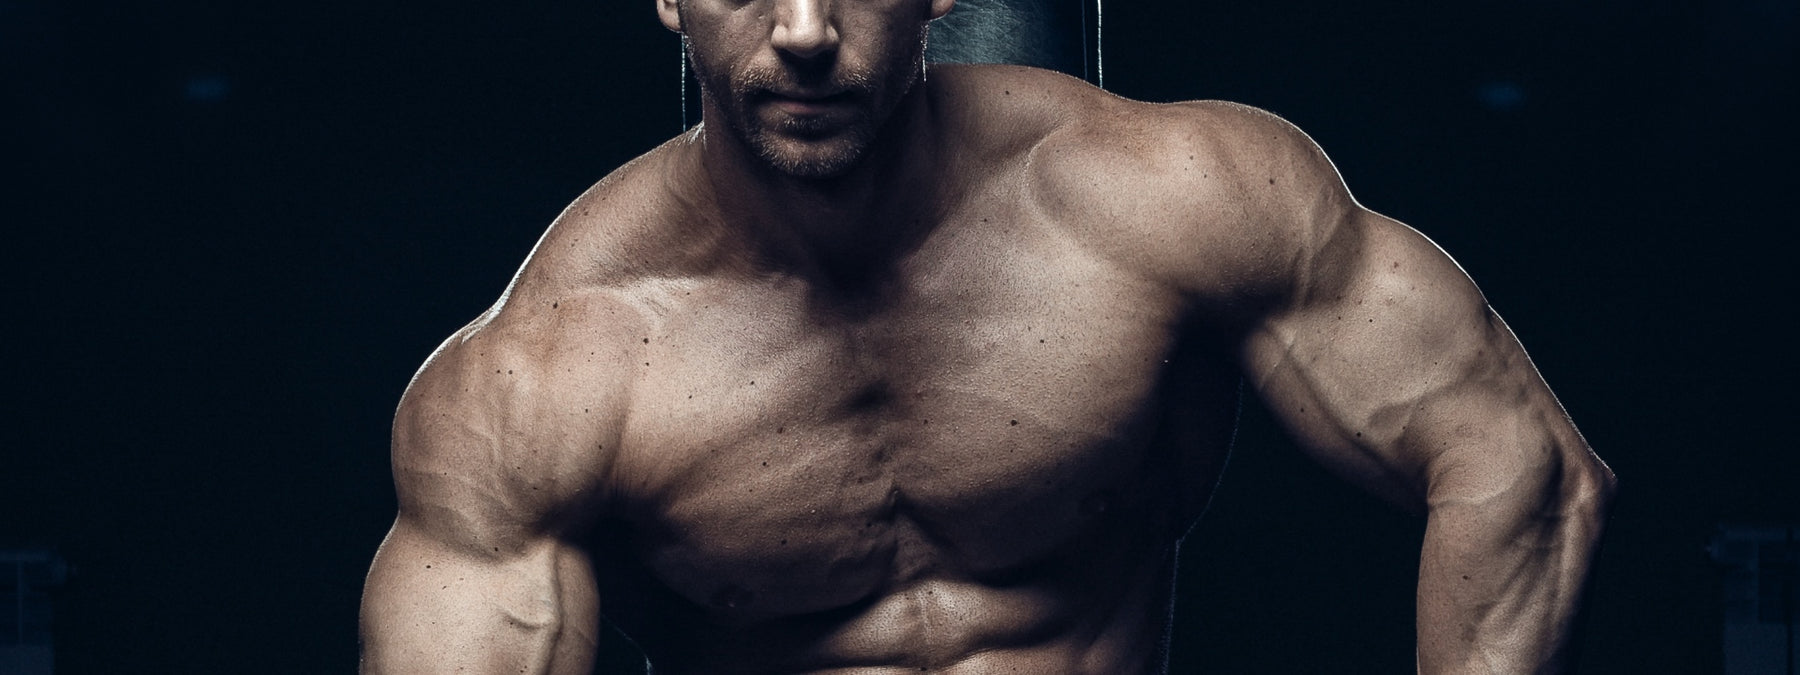 2 Muscle Building Workouts: Building the X-Frame Physique